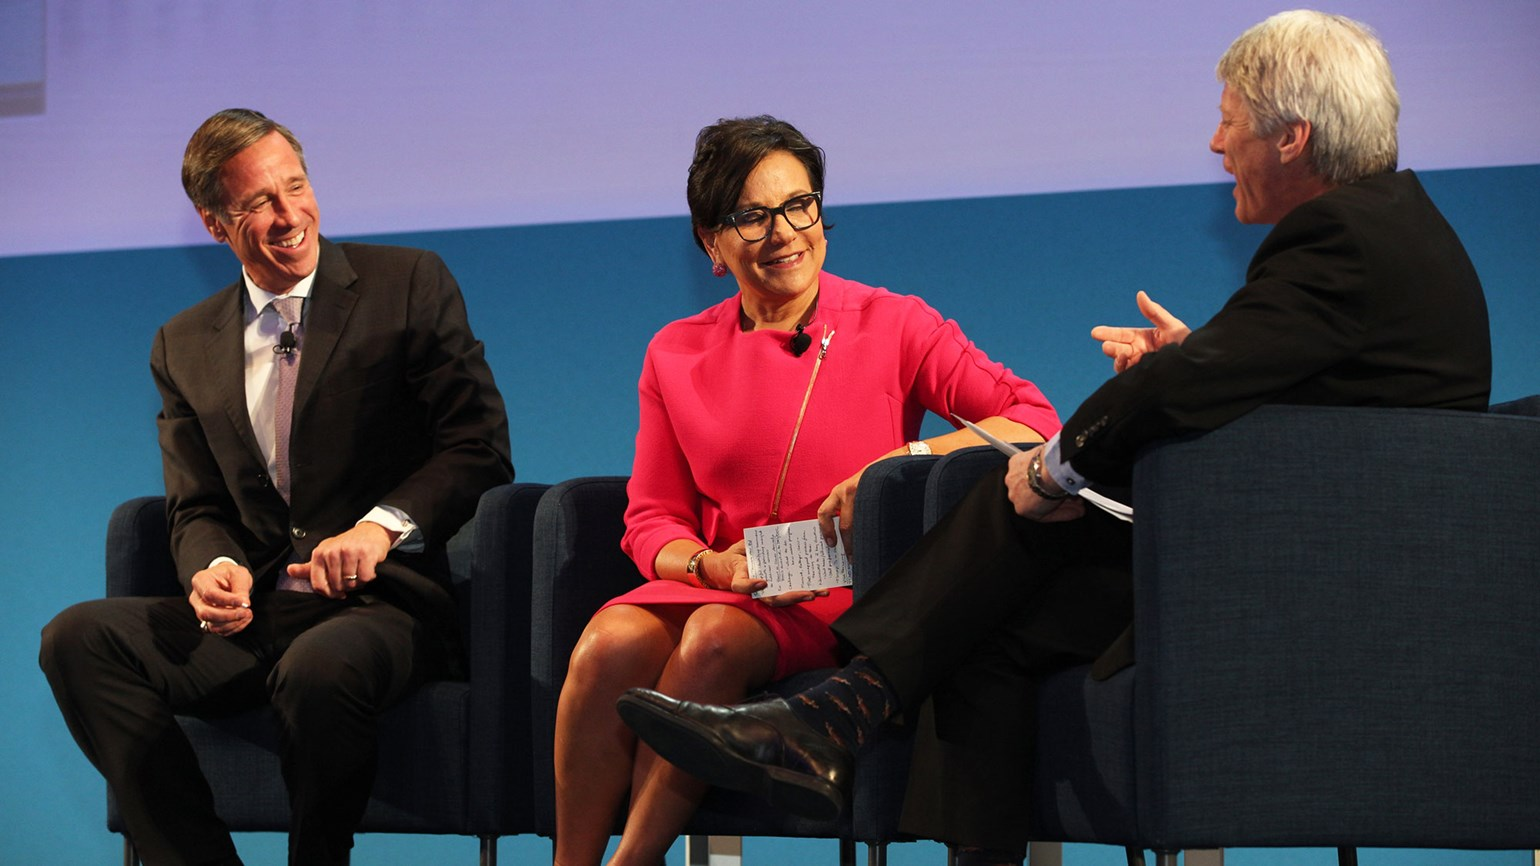 Borders and terror the ubiquitous topics at WTTC summit